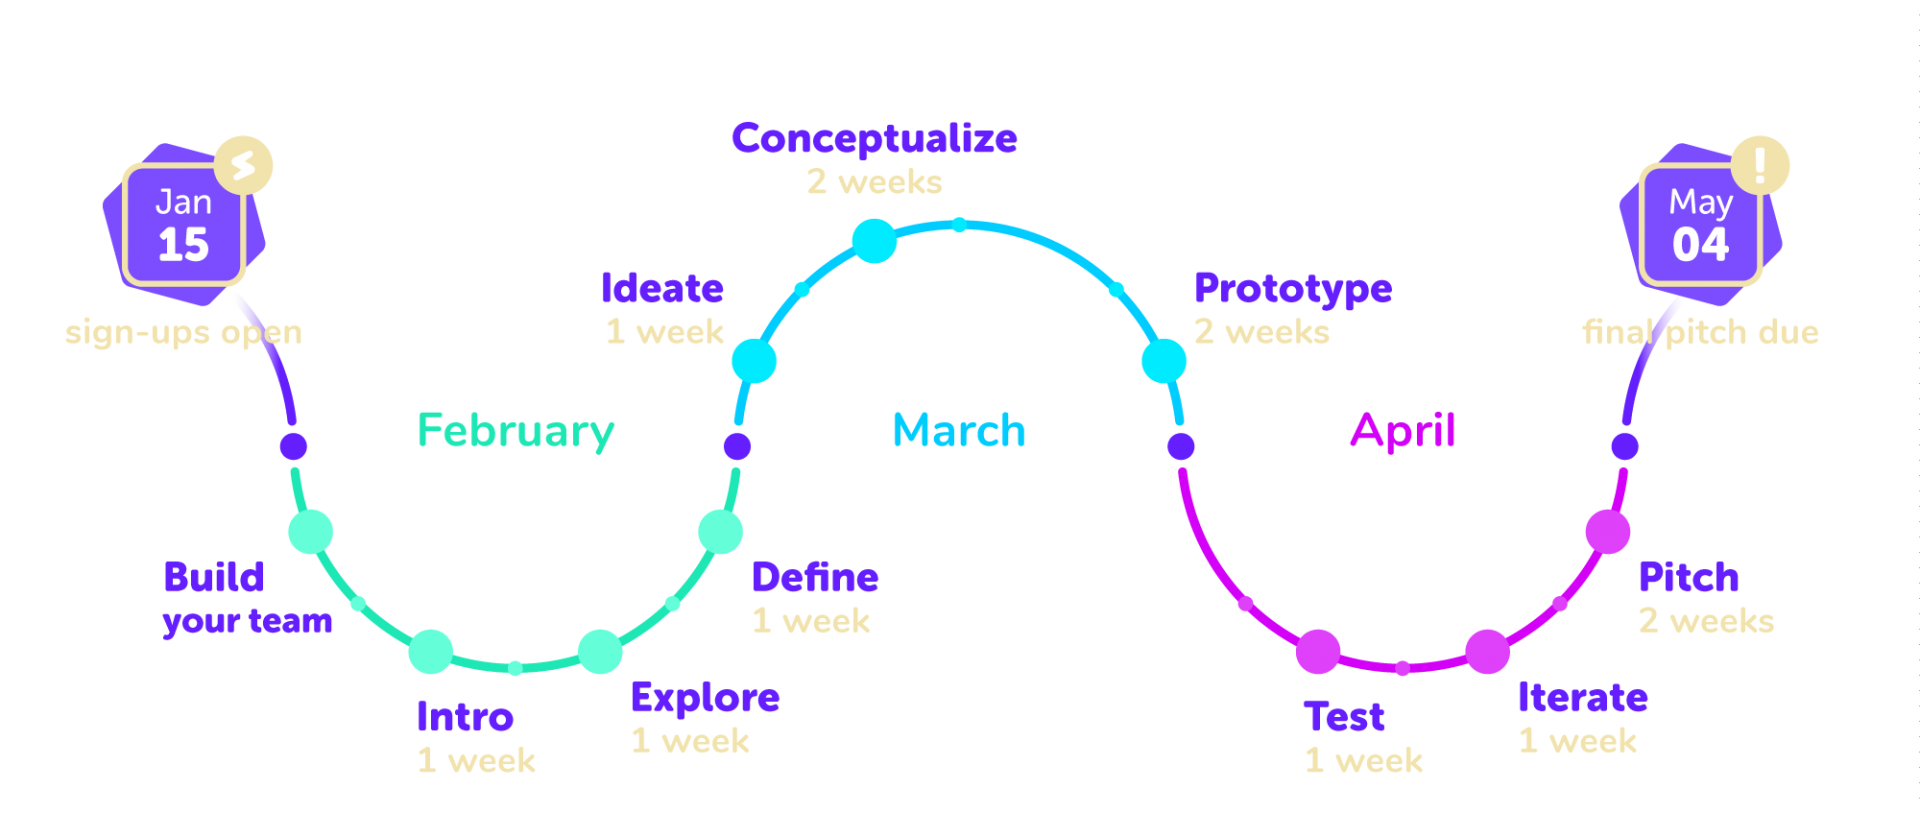 This is visual of the 2018 TFF Challenge timeline. The sign-ups opened on January 15 and end on May 4.